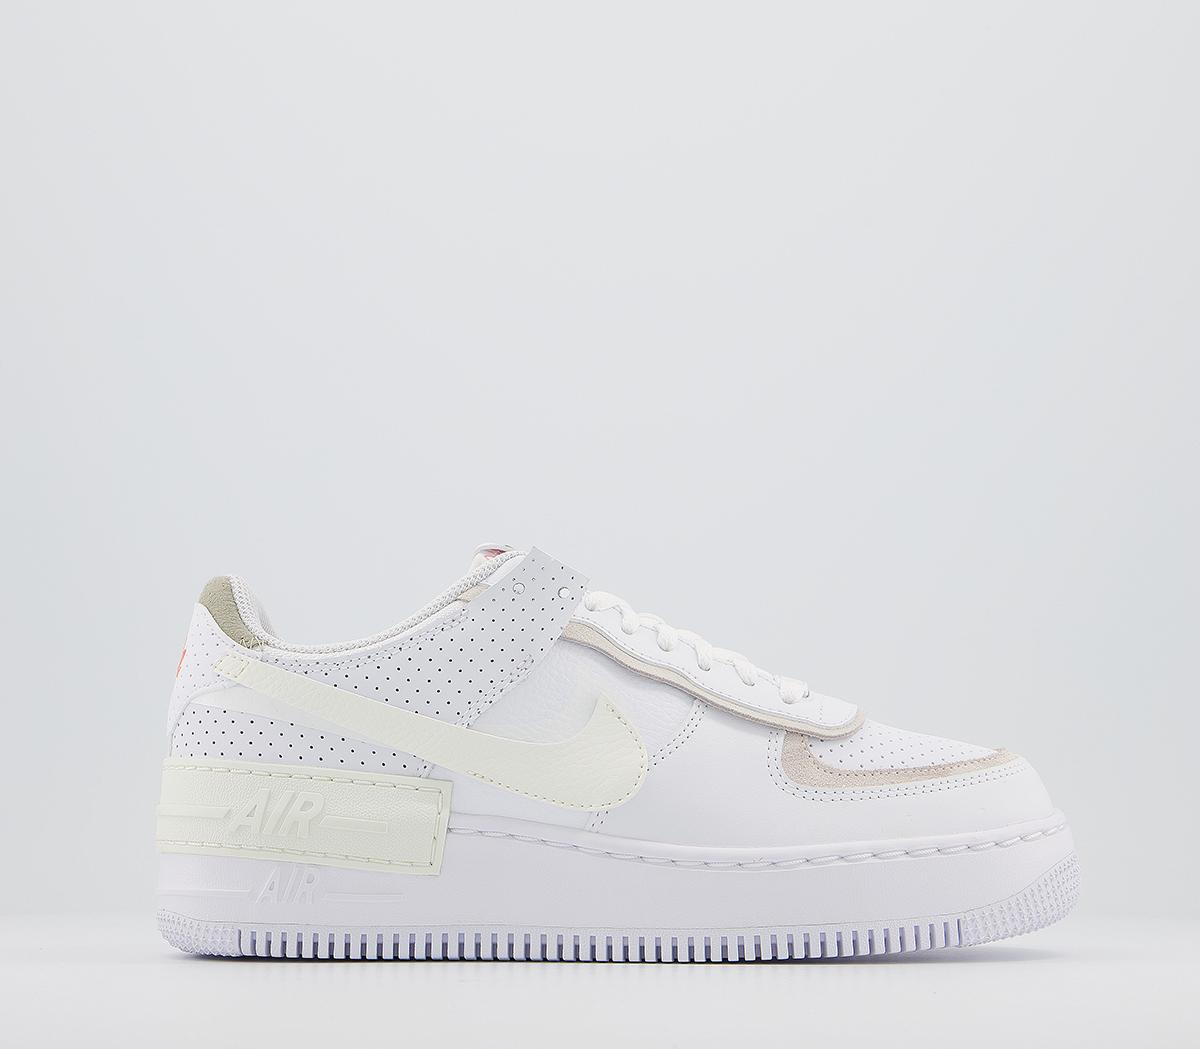 Nike Air Force 1 Shadow Trainers White Sail Stone Atomic Pink Unisex Sports Кроссовки nike air force 1 betrue. air force 1 shadow trainers